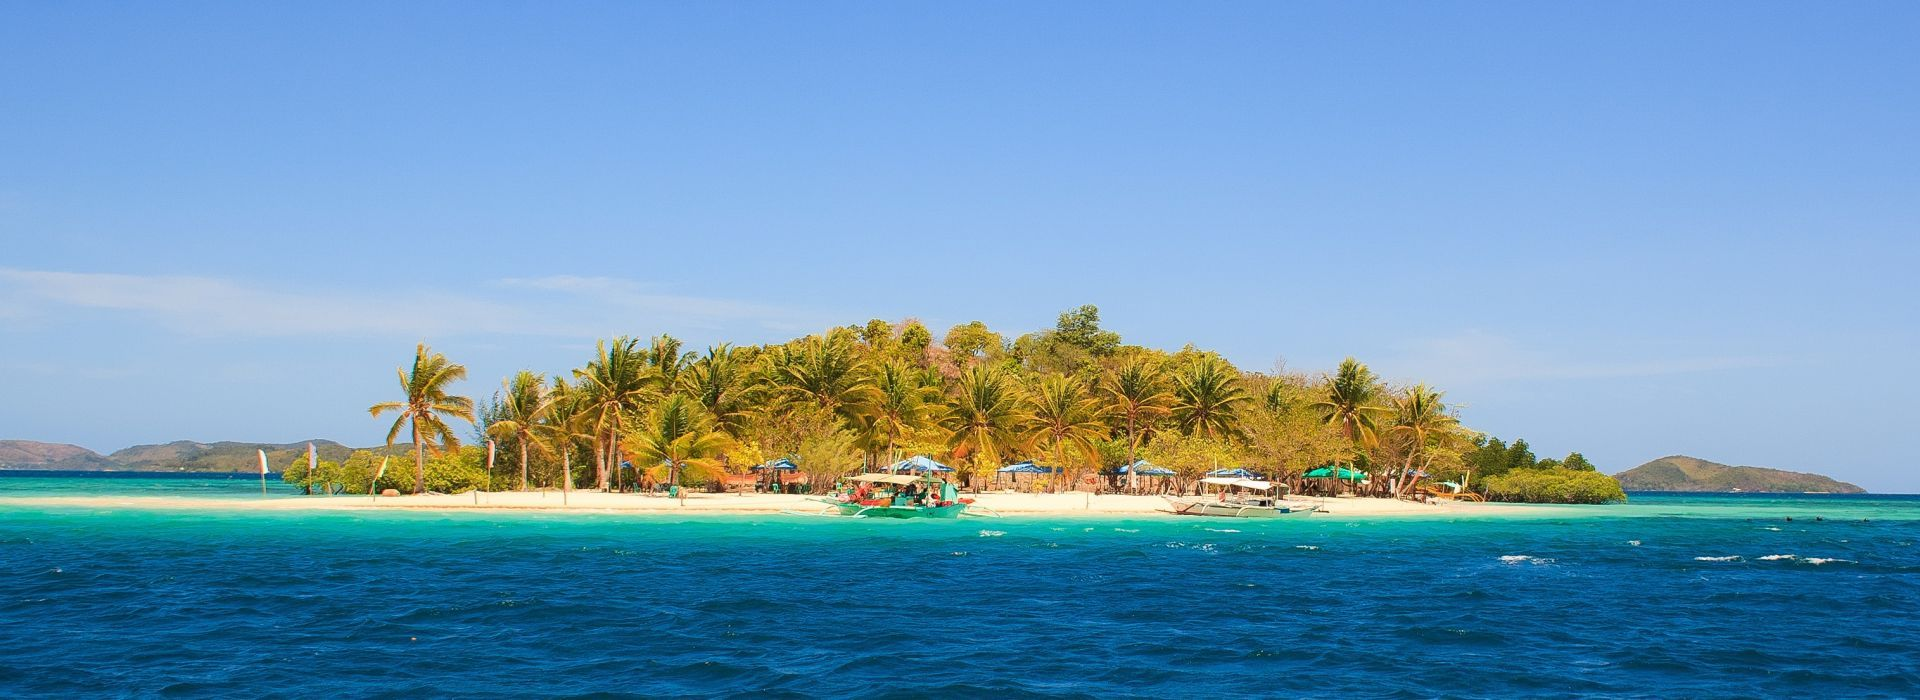 Sightseeing Tours in Philippines